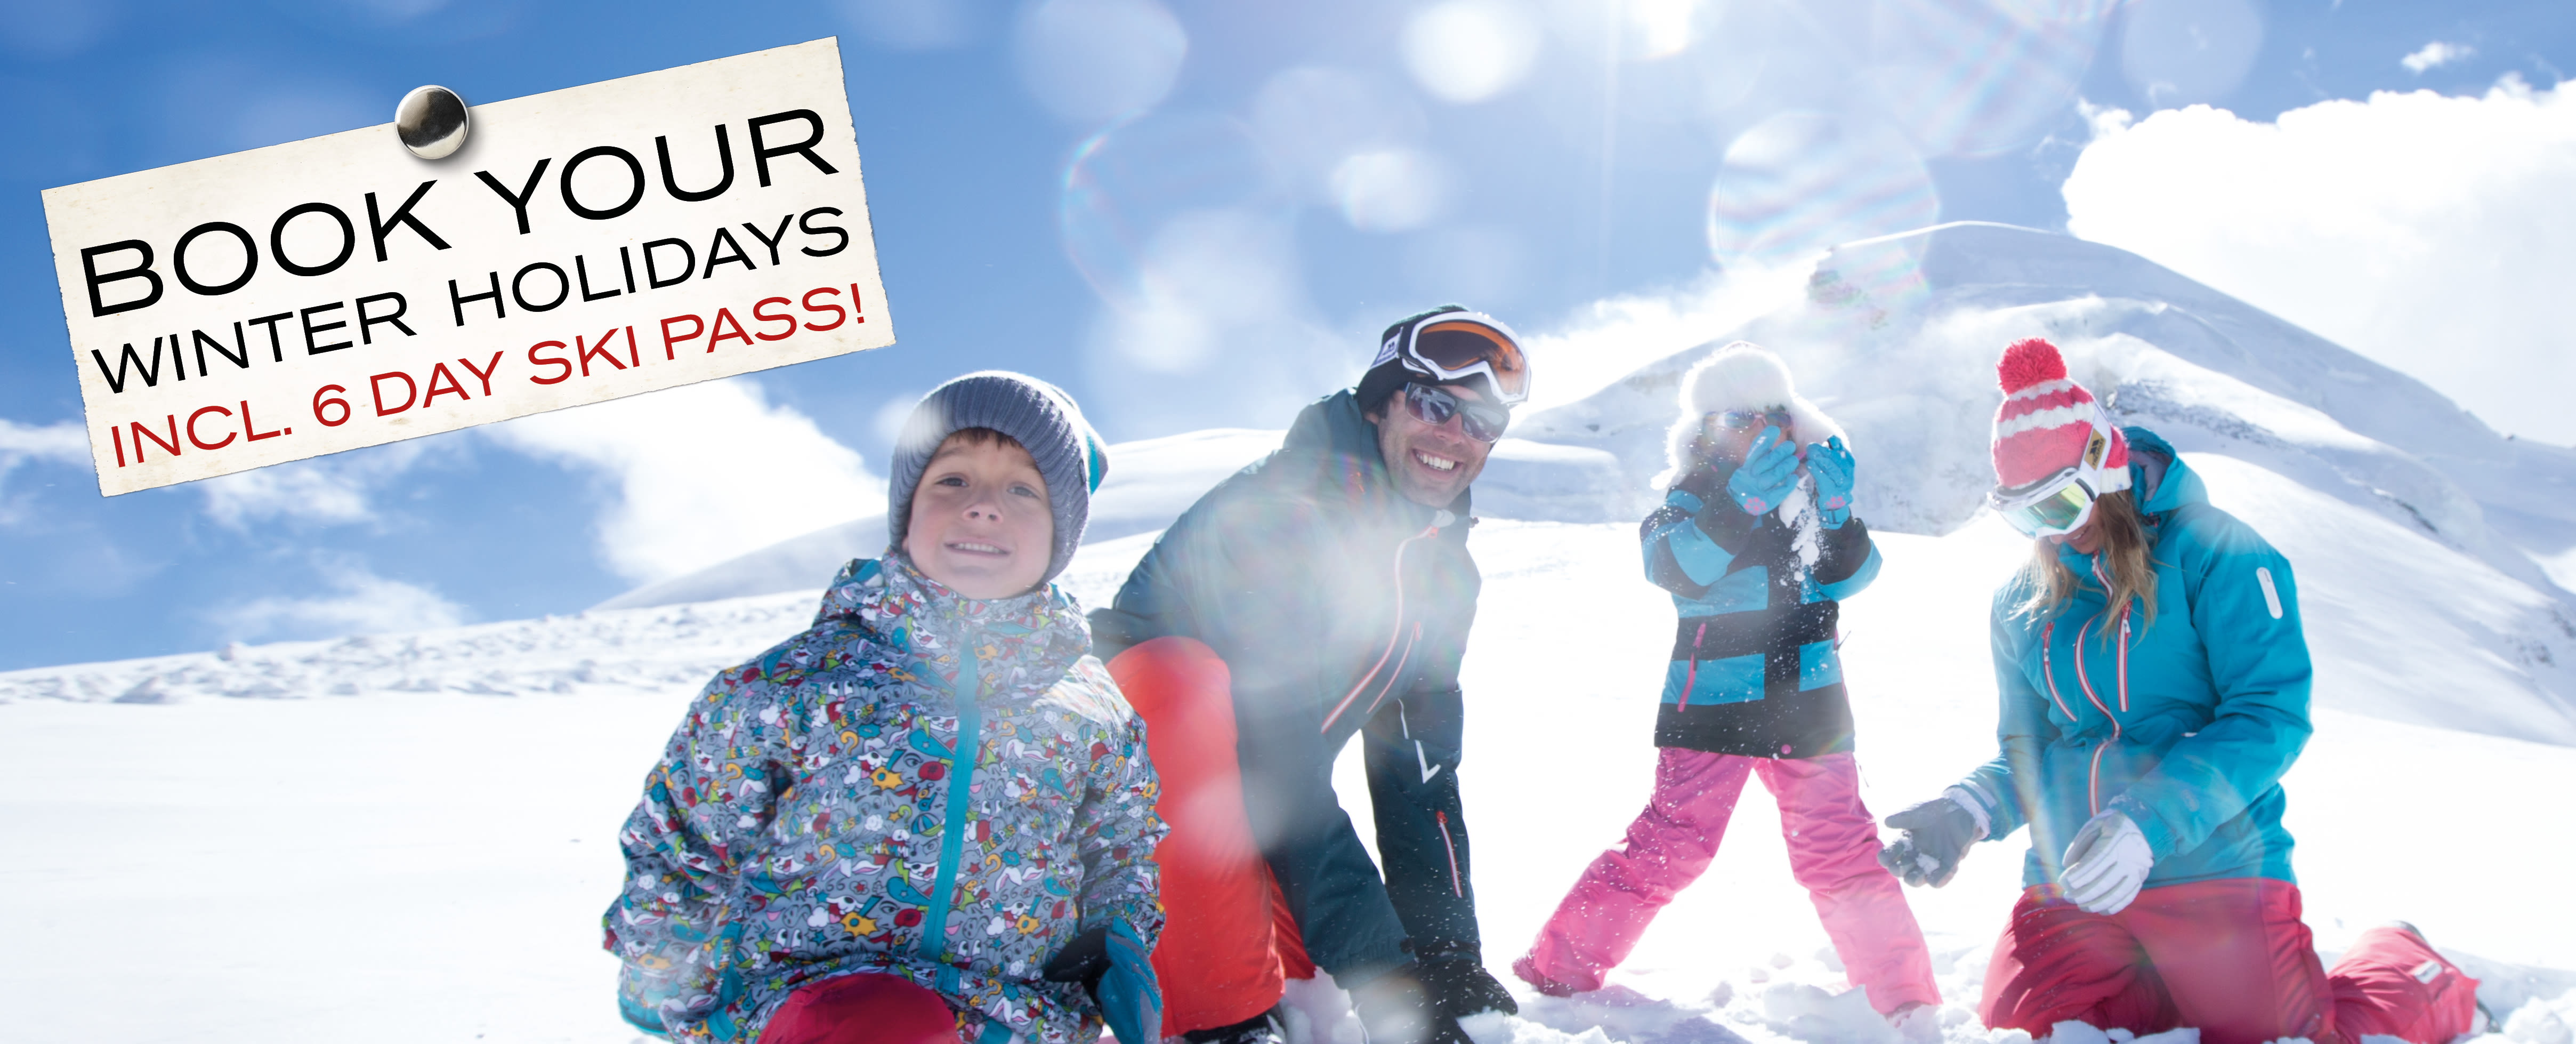 Book your winter holidays incl. 6 day ski pass!